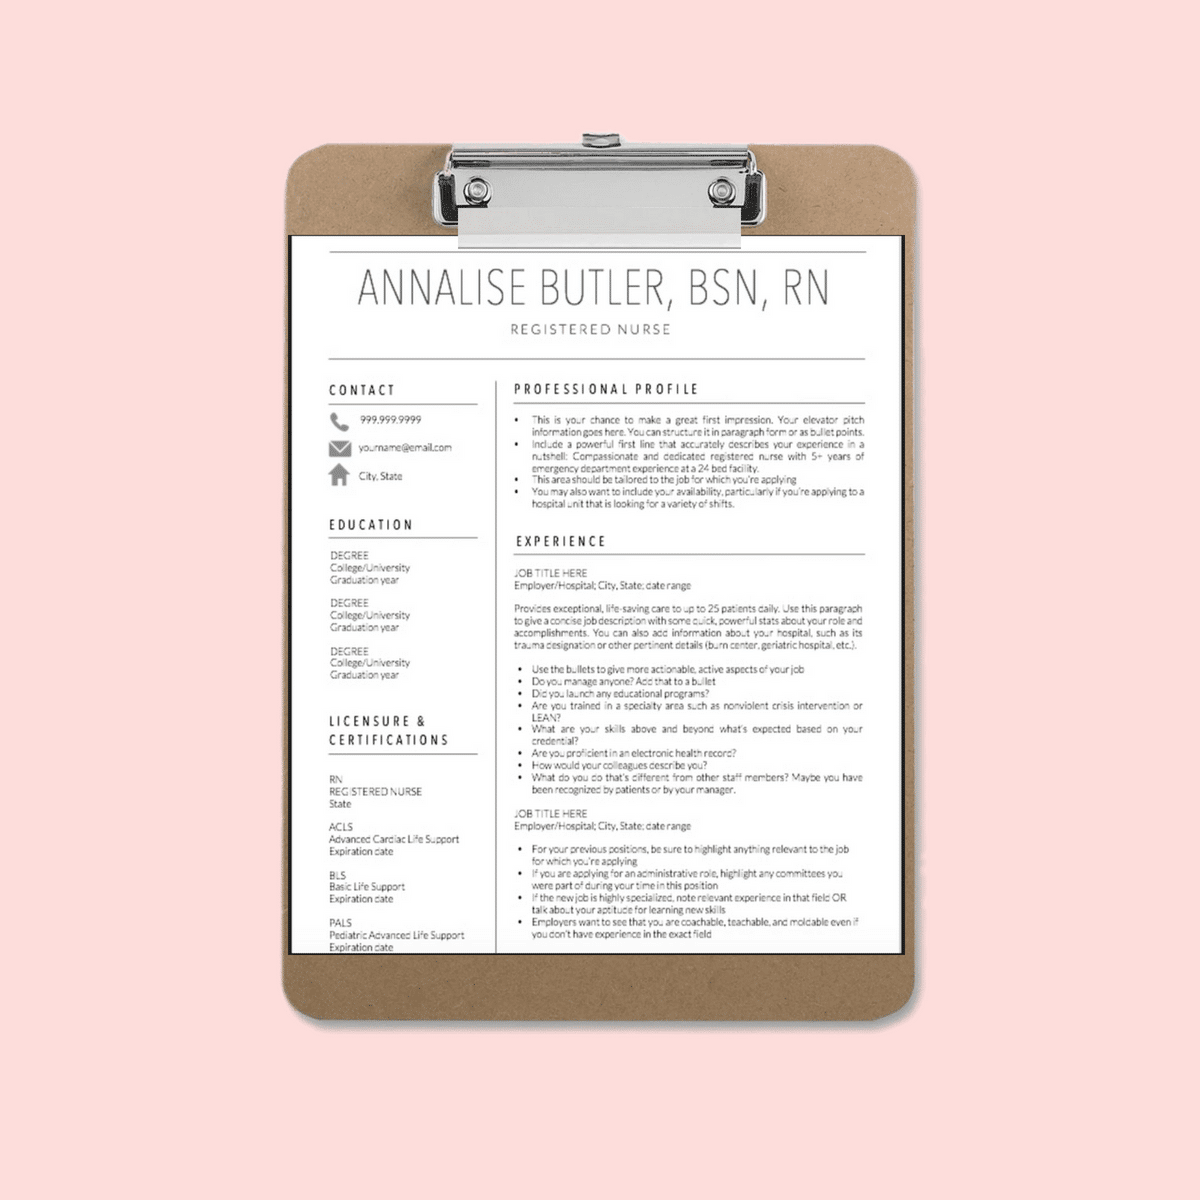 NEW GRAD STUDENT Resume Template Annalise